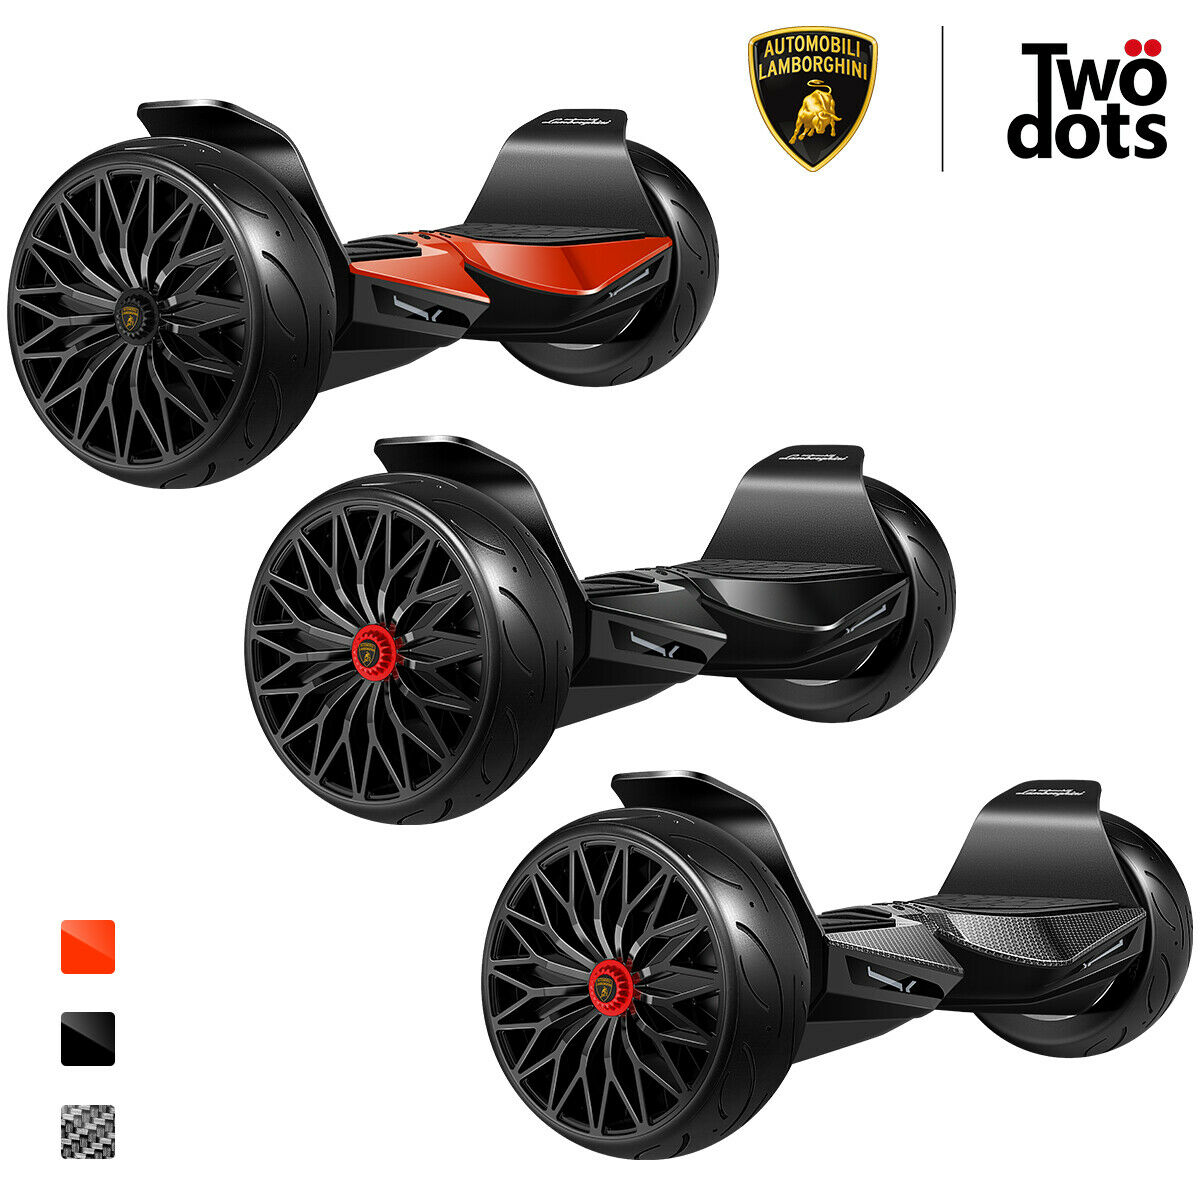 Lamborghini Hoverboard With Bluetooth Speaker & App 8.5' Two-Wheel Balancing Scooter (Black)